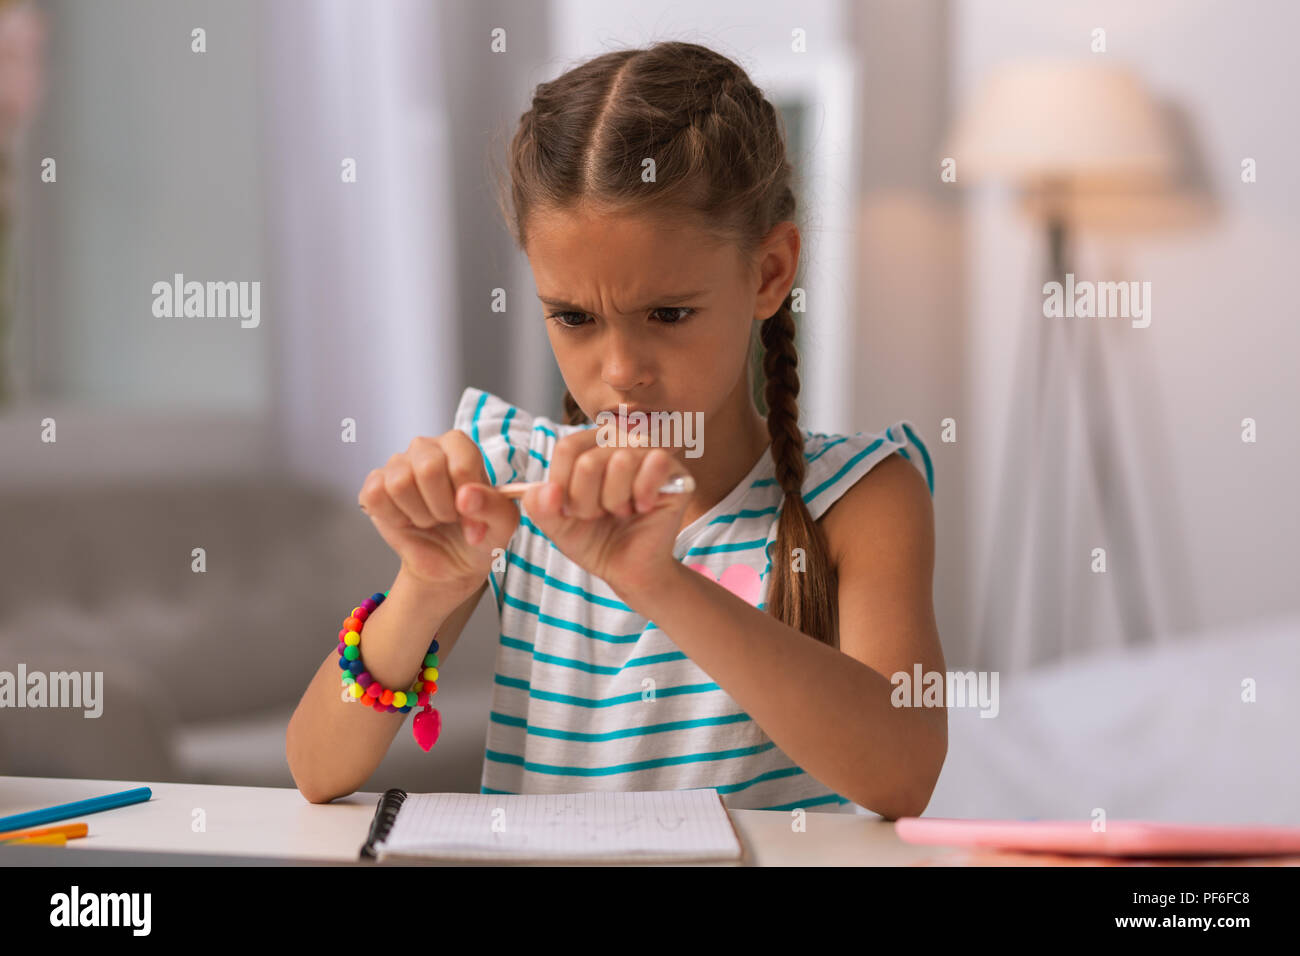 Depressed angry girl holding a pencil at home - Stock Image